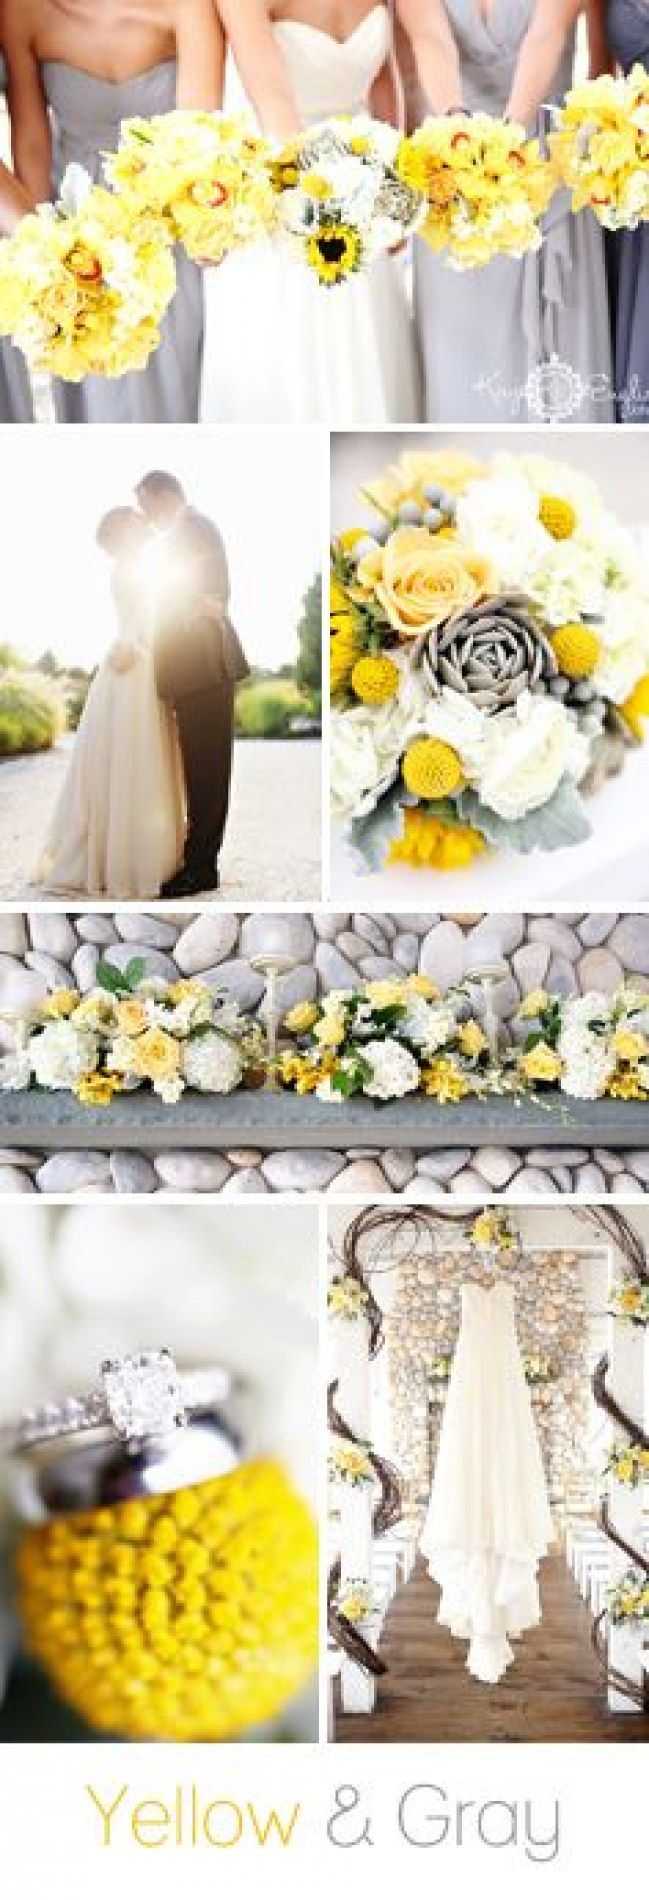 30 weddig decoration ideas #deco #wedding #decoration #śliub #dekoracje #flowers #ideas #pastels